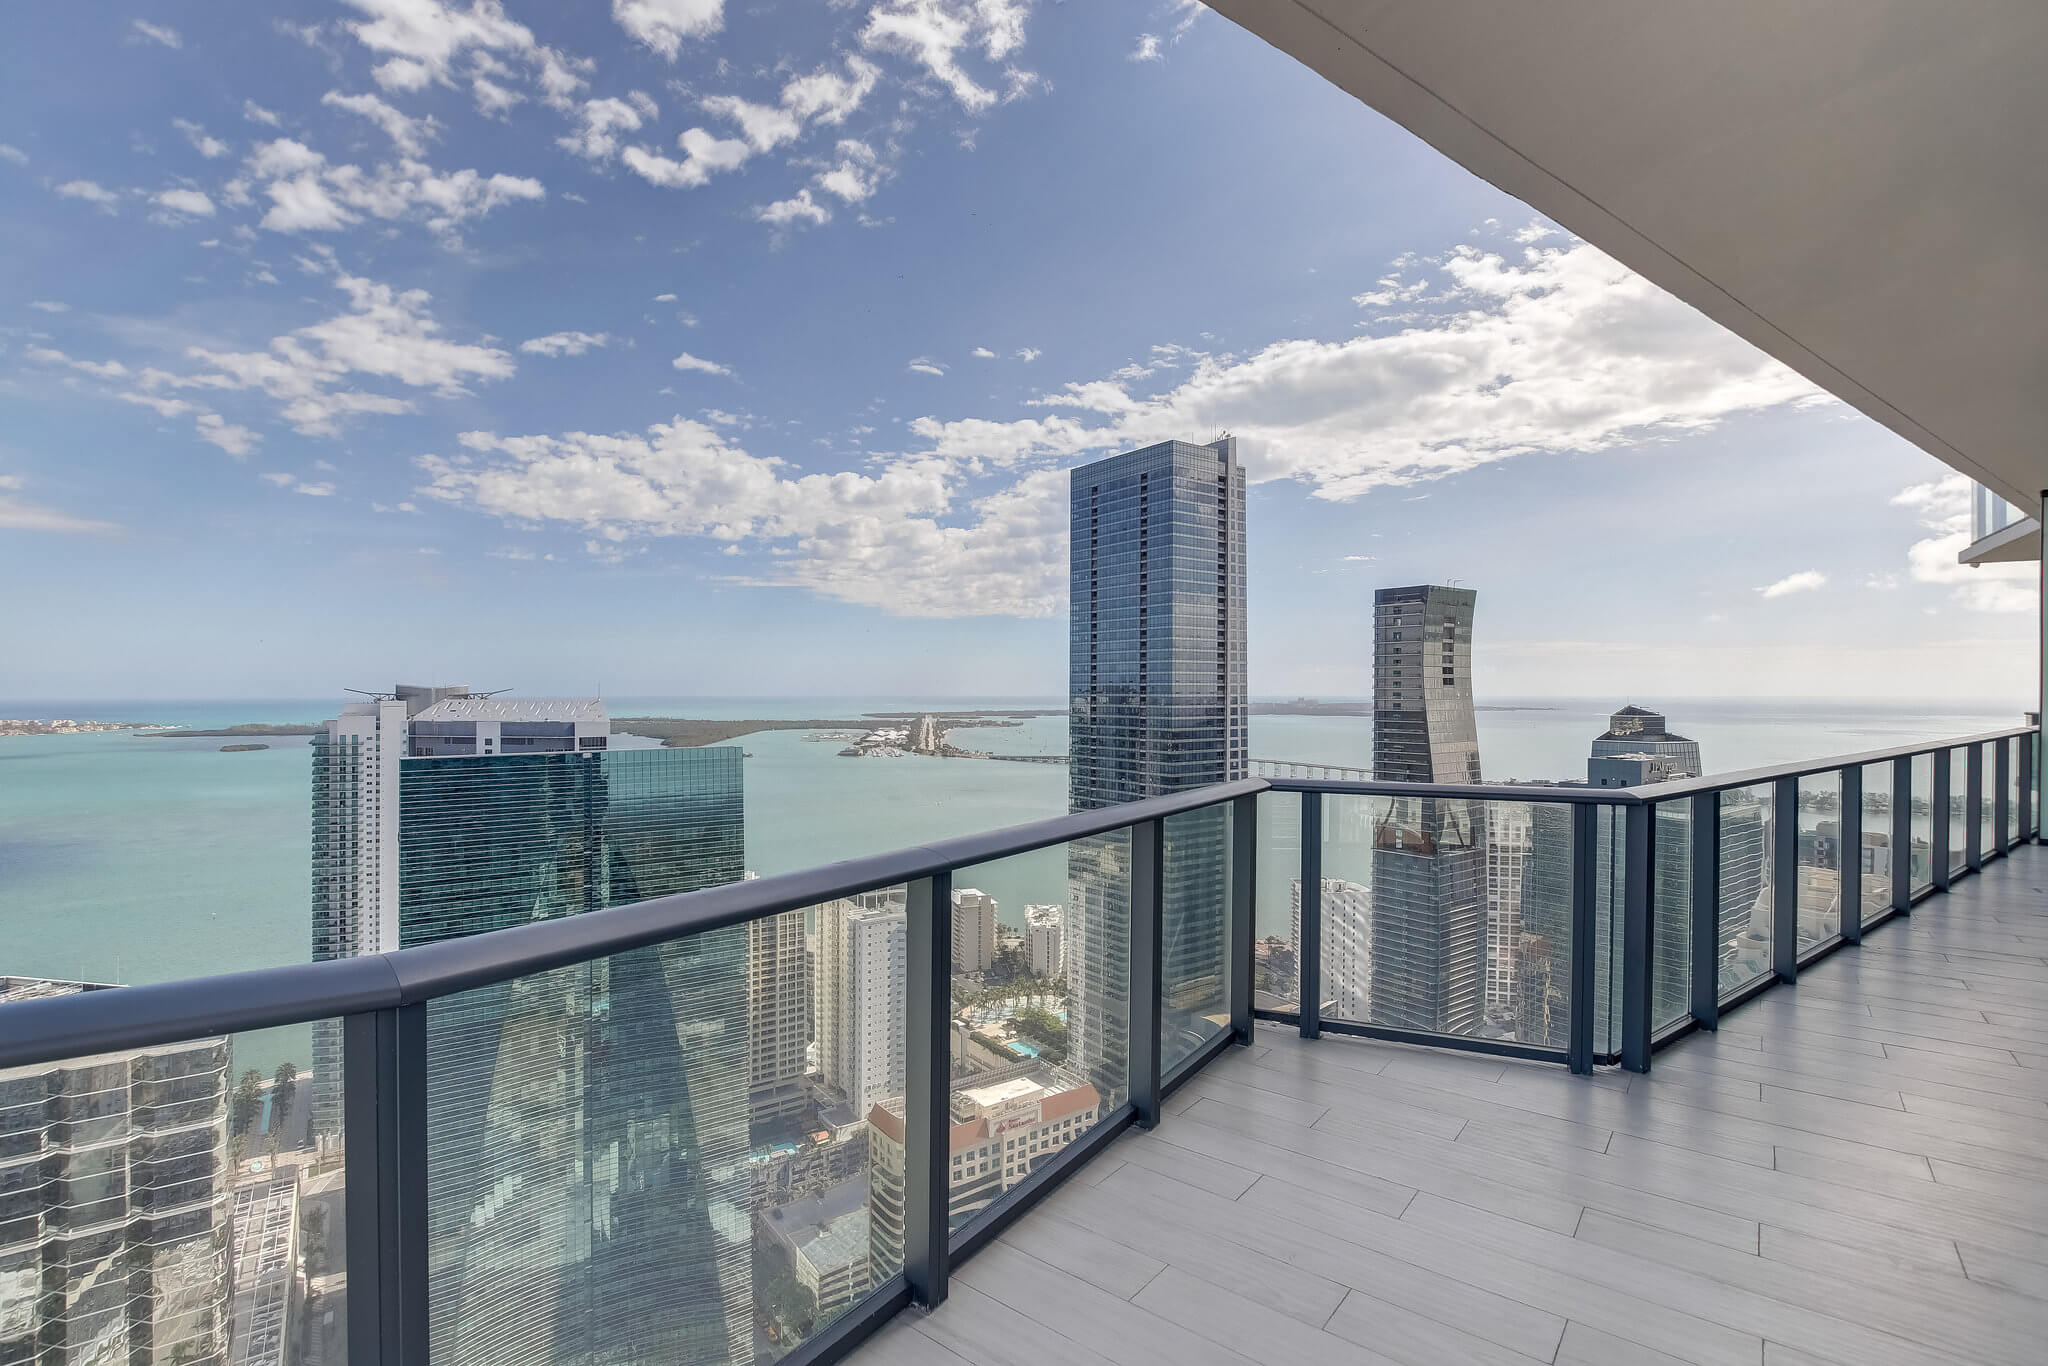 27__sls_brickell_photo_by_MiamiRealEstatePhotographers.com